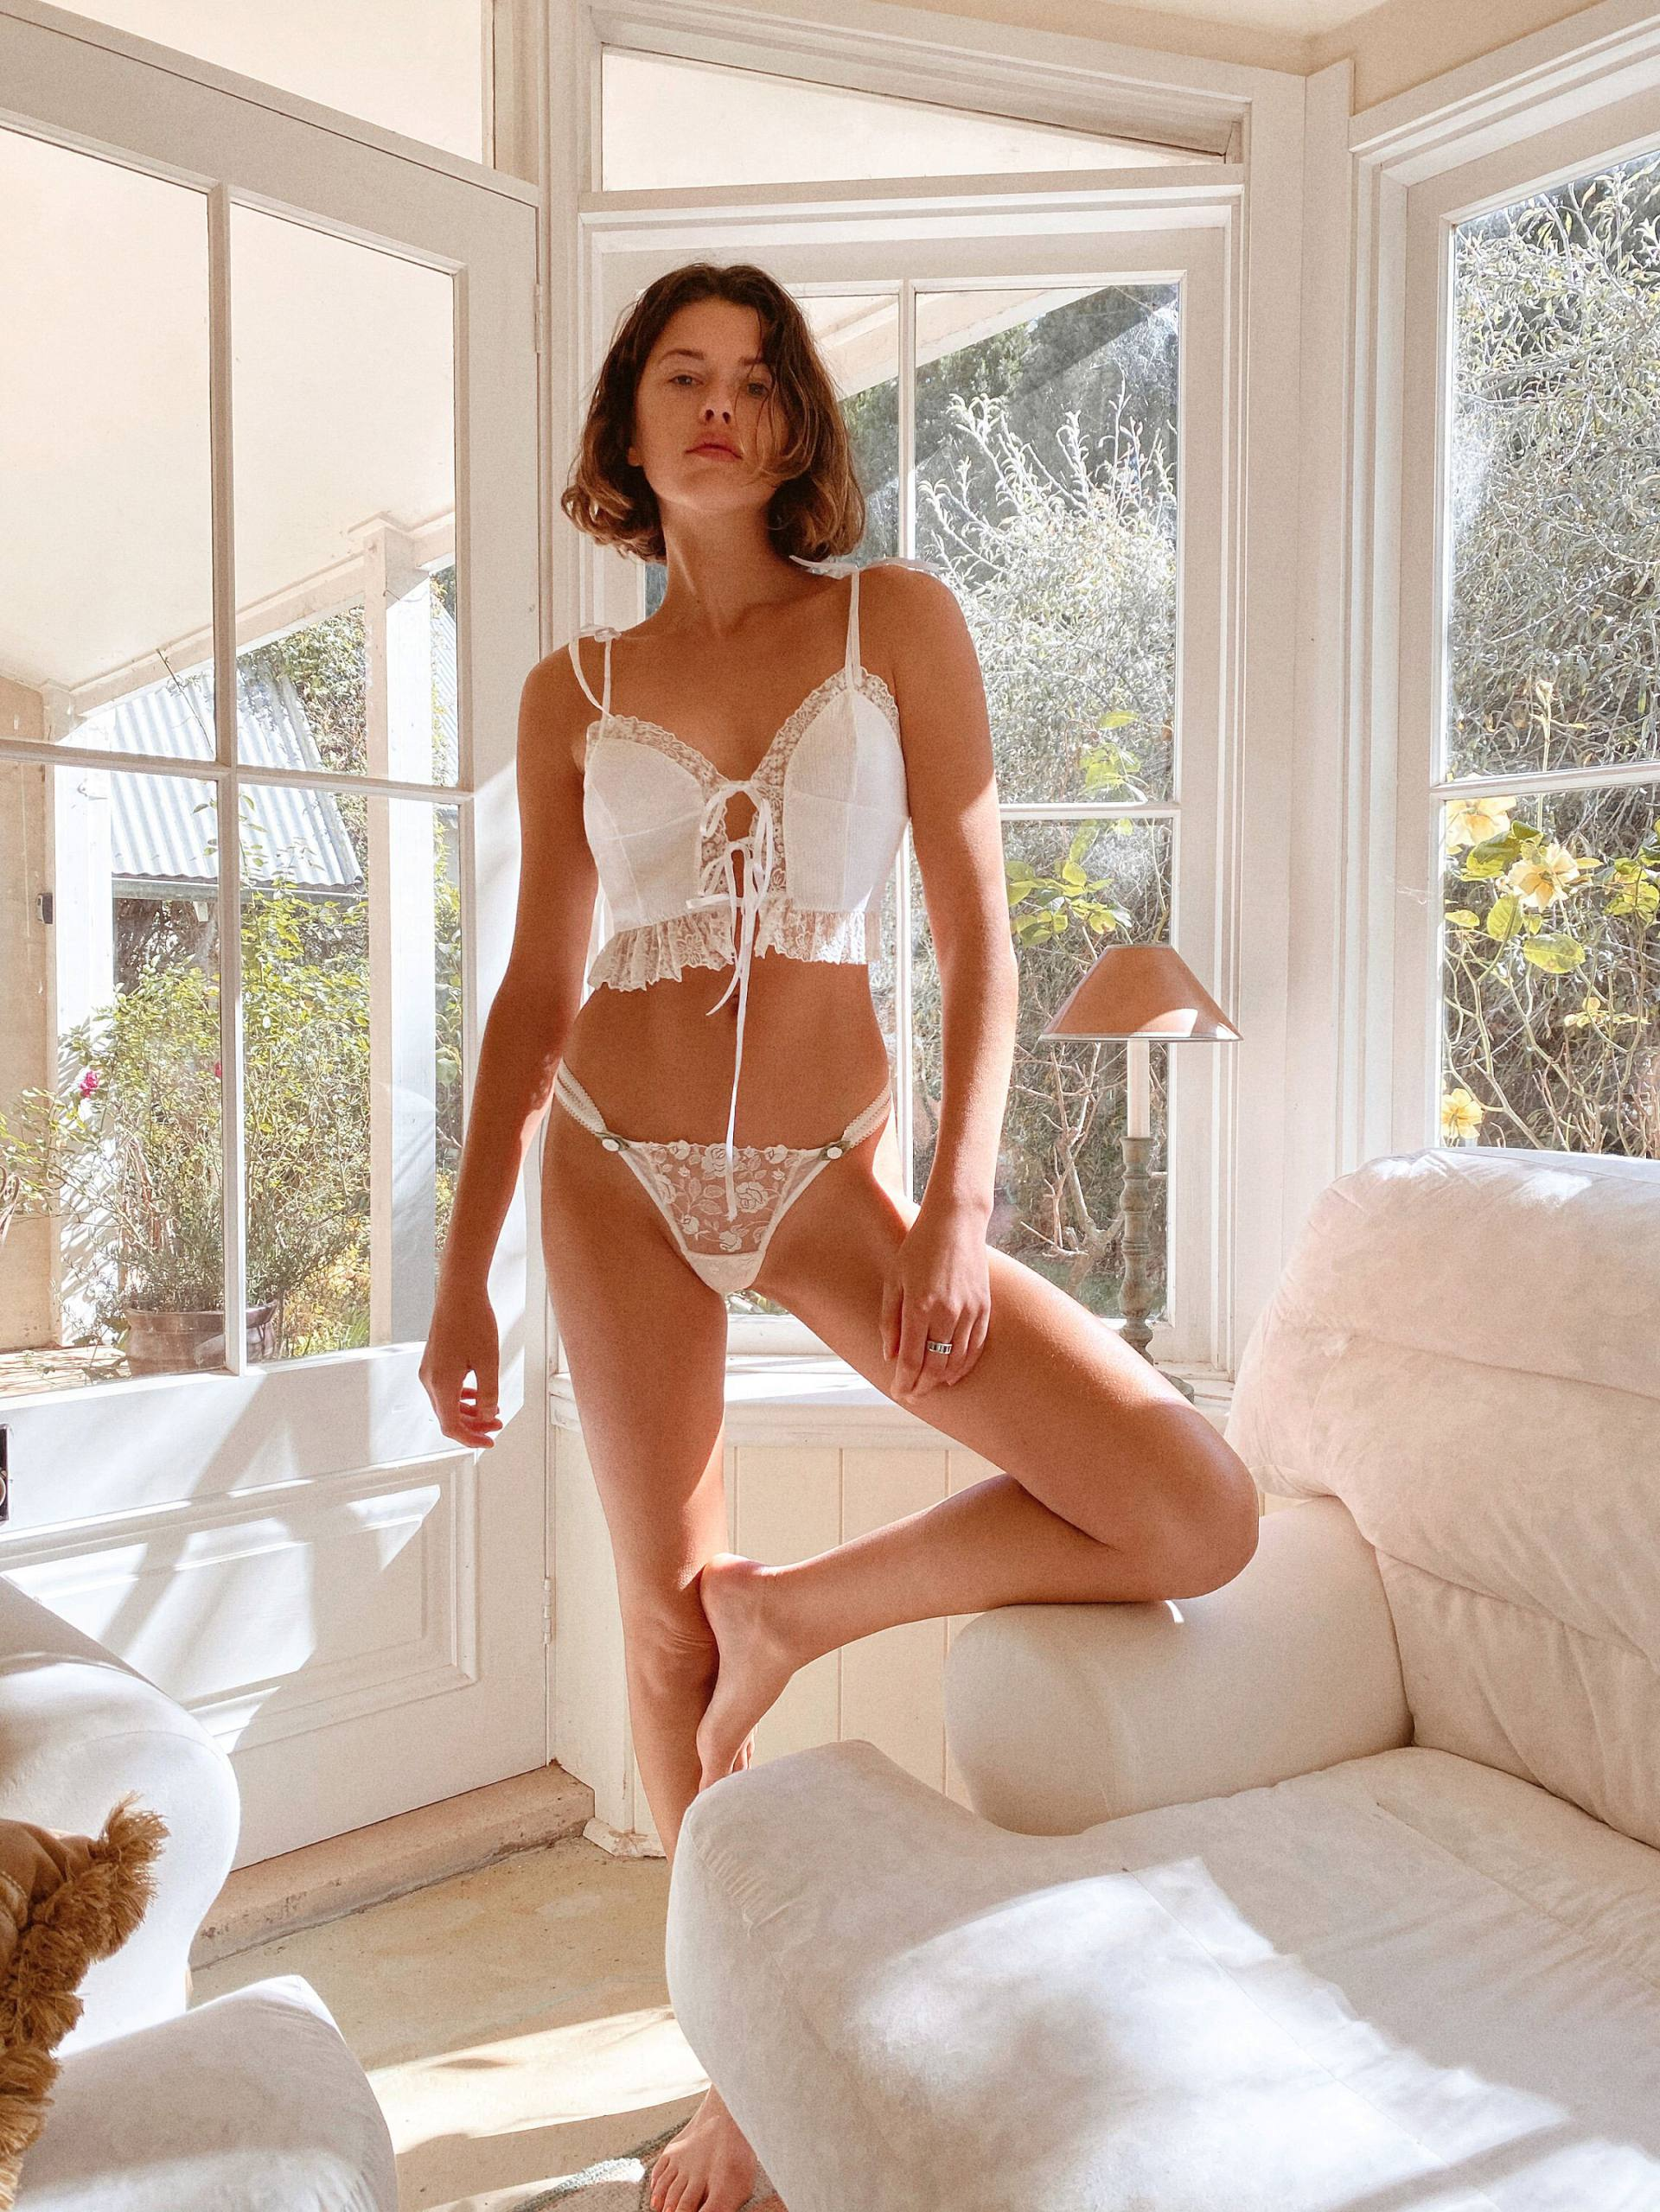 Georgia Fowler – Hot Body In Sexy Lingerie For Victoria's Secret X For Love & Lemons Photoshoot 0004